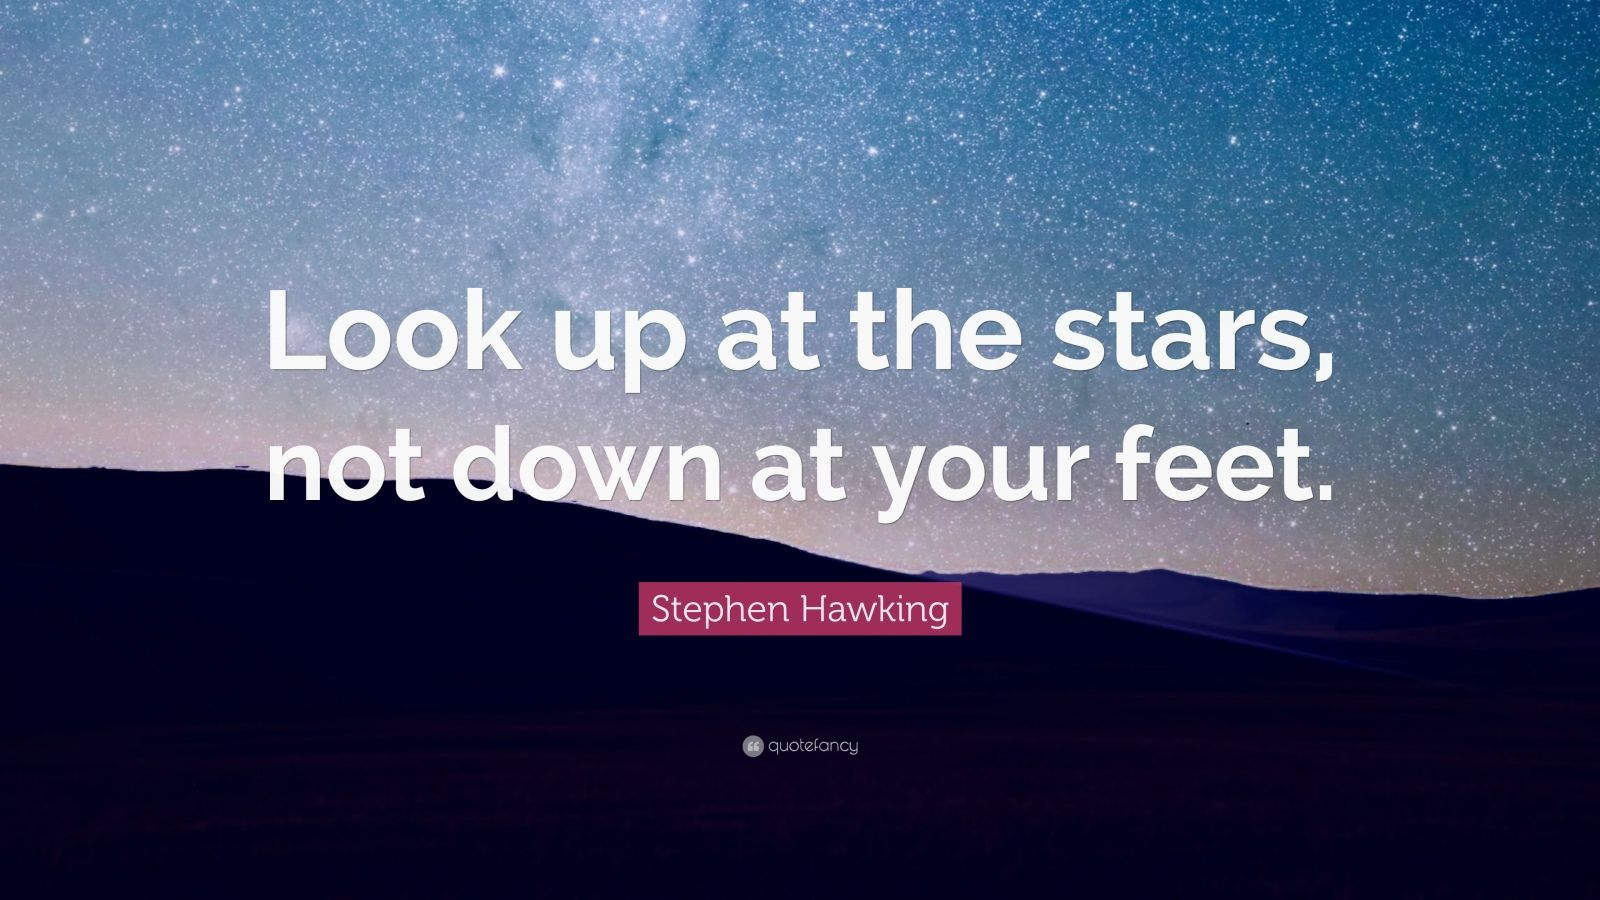 "Quotes About Stars: ""Look up at the stars, not down at your feet."" — Stephen Hawking"